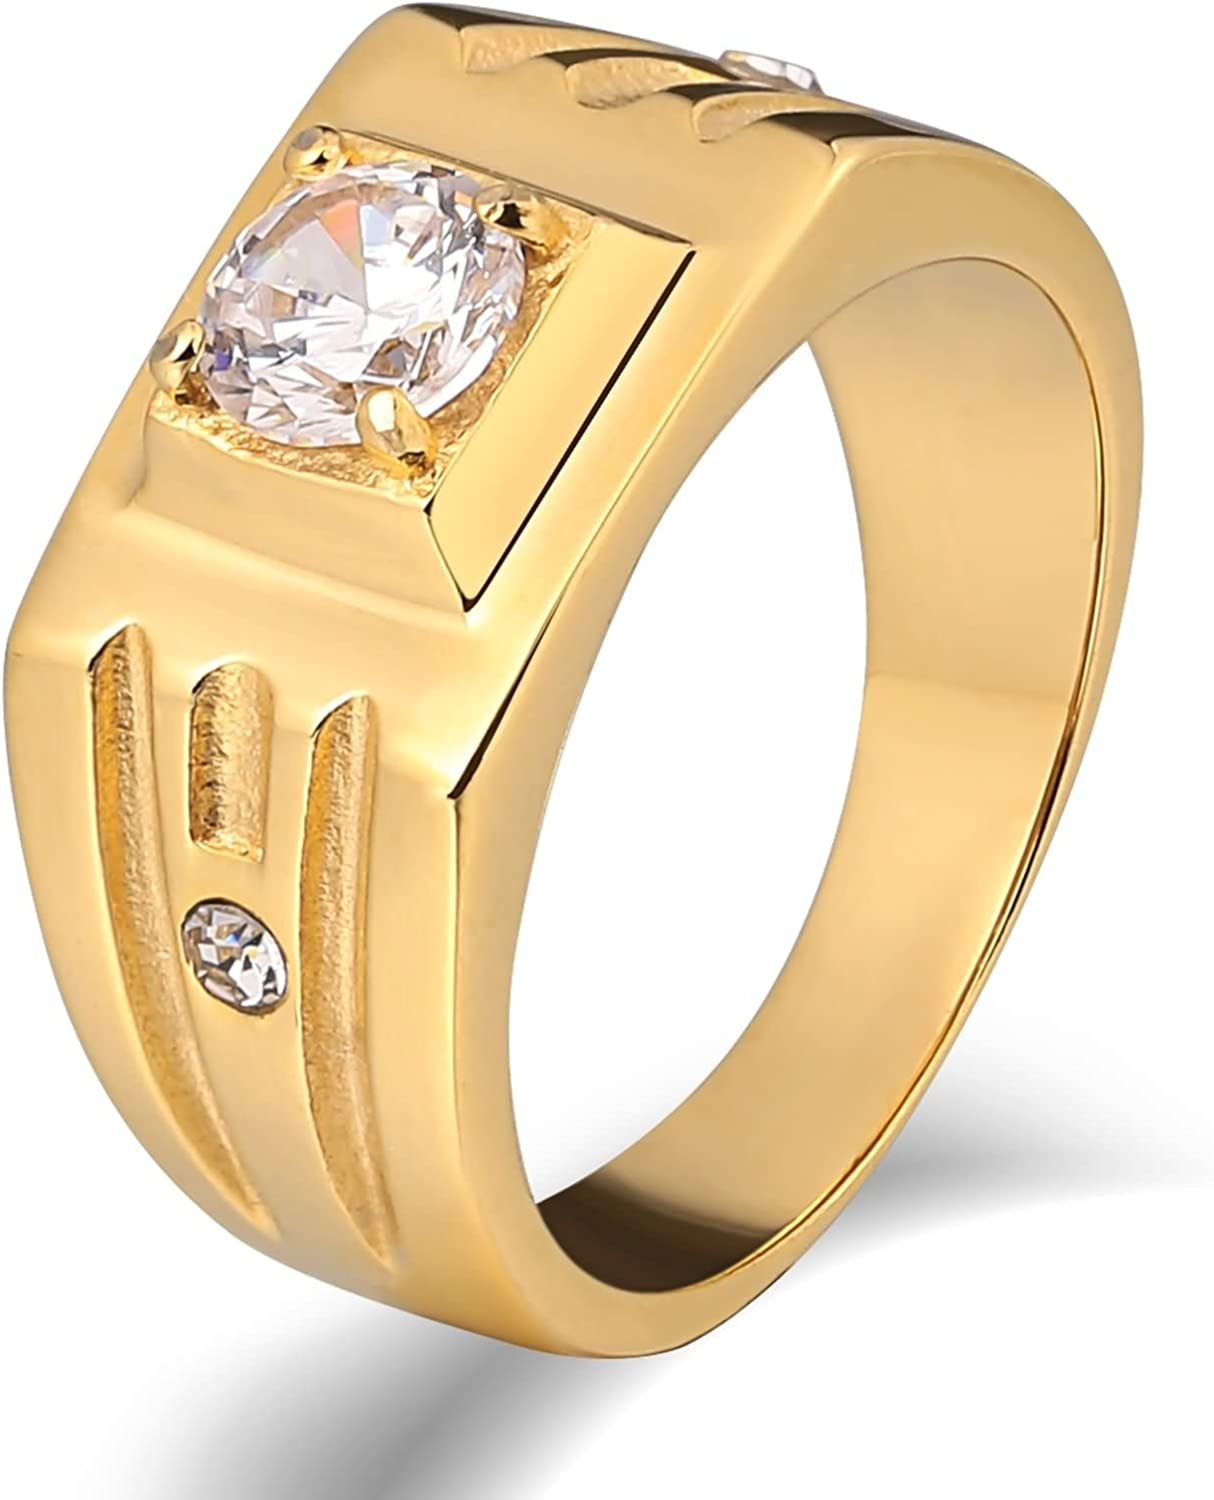 Epinki Popular brand 4 years warranty in the world Stainless Steel for Men Punk Cubic Rings Zi High Polished